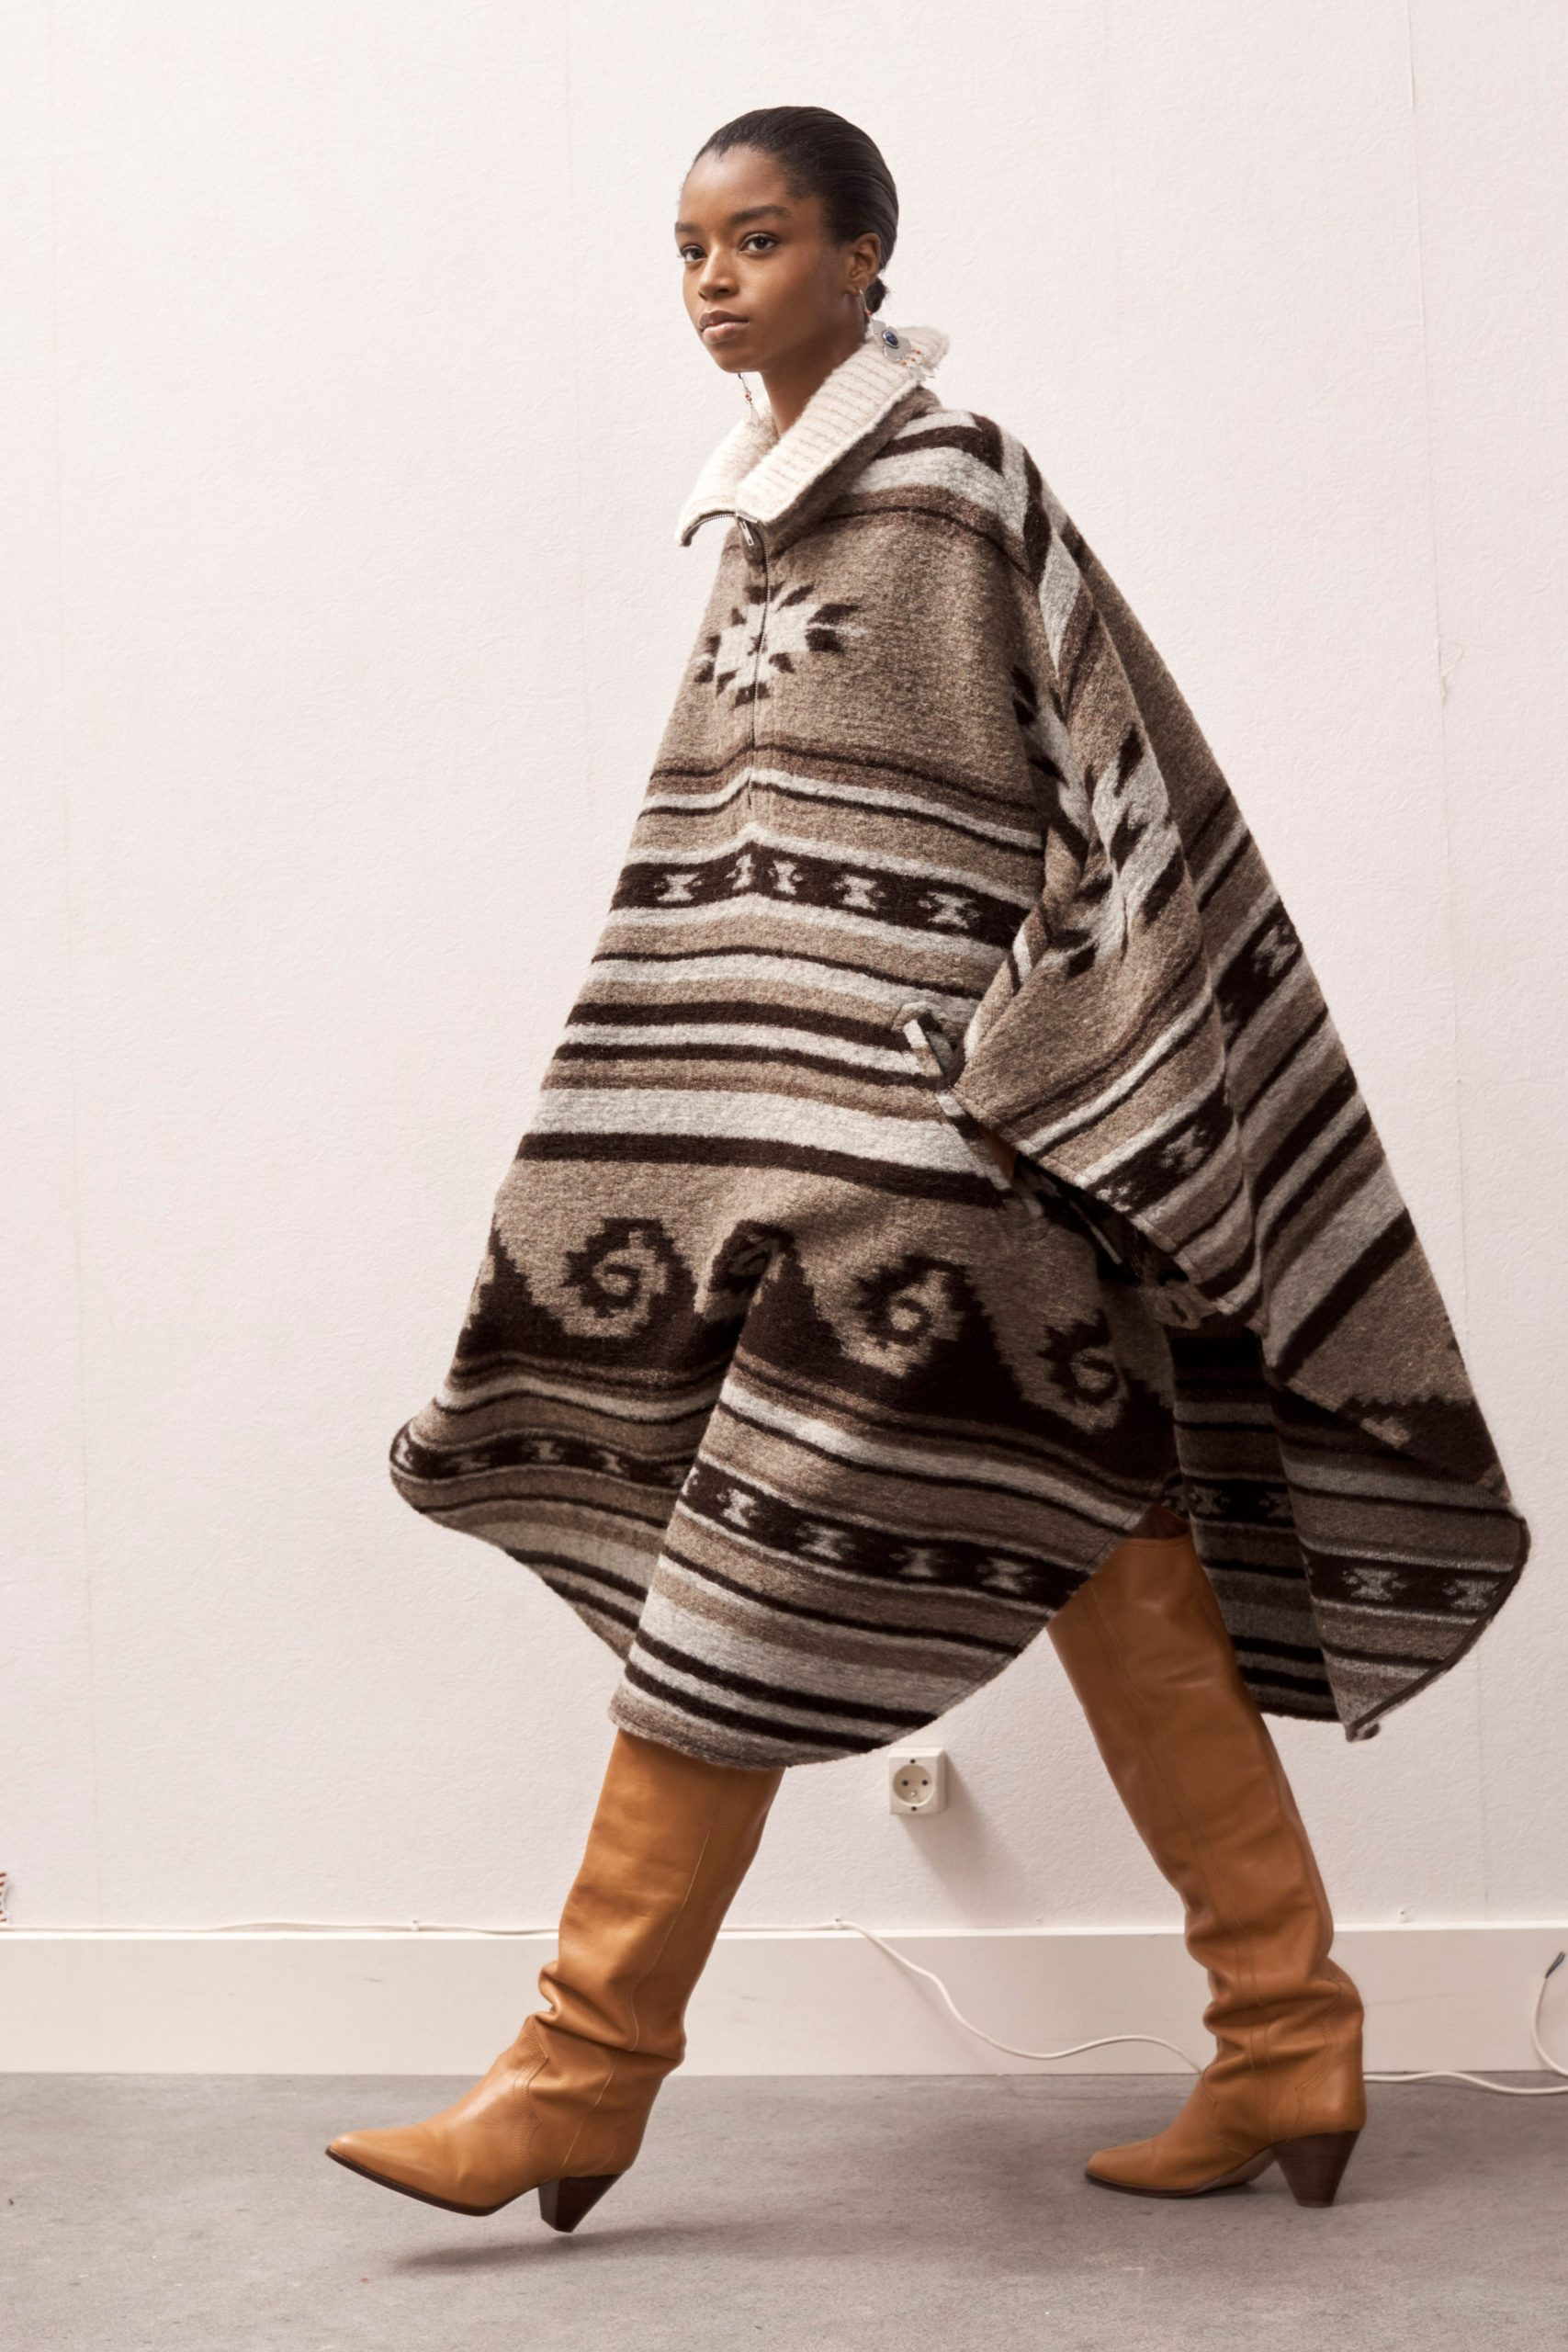 Model wearing a cape with stripes and undulating motifs in different shades of brown and caramel-colored, knee-length boots